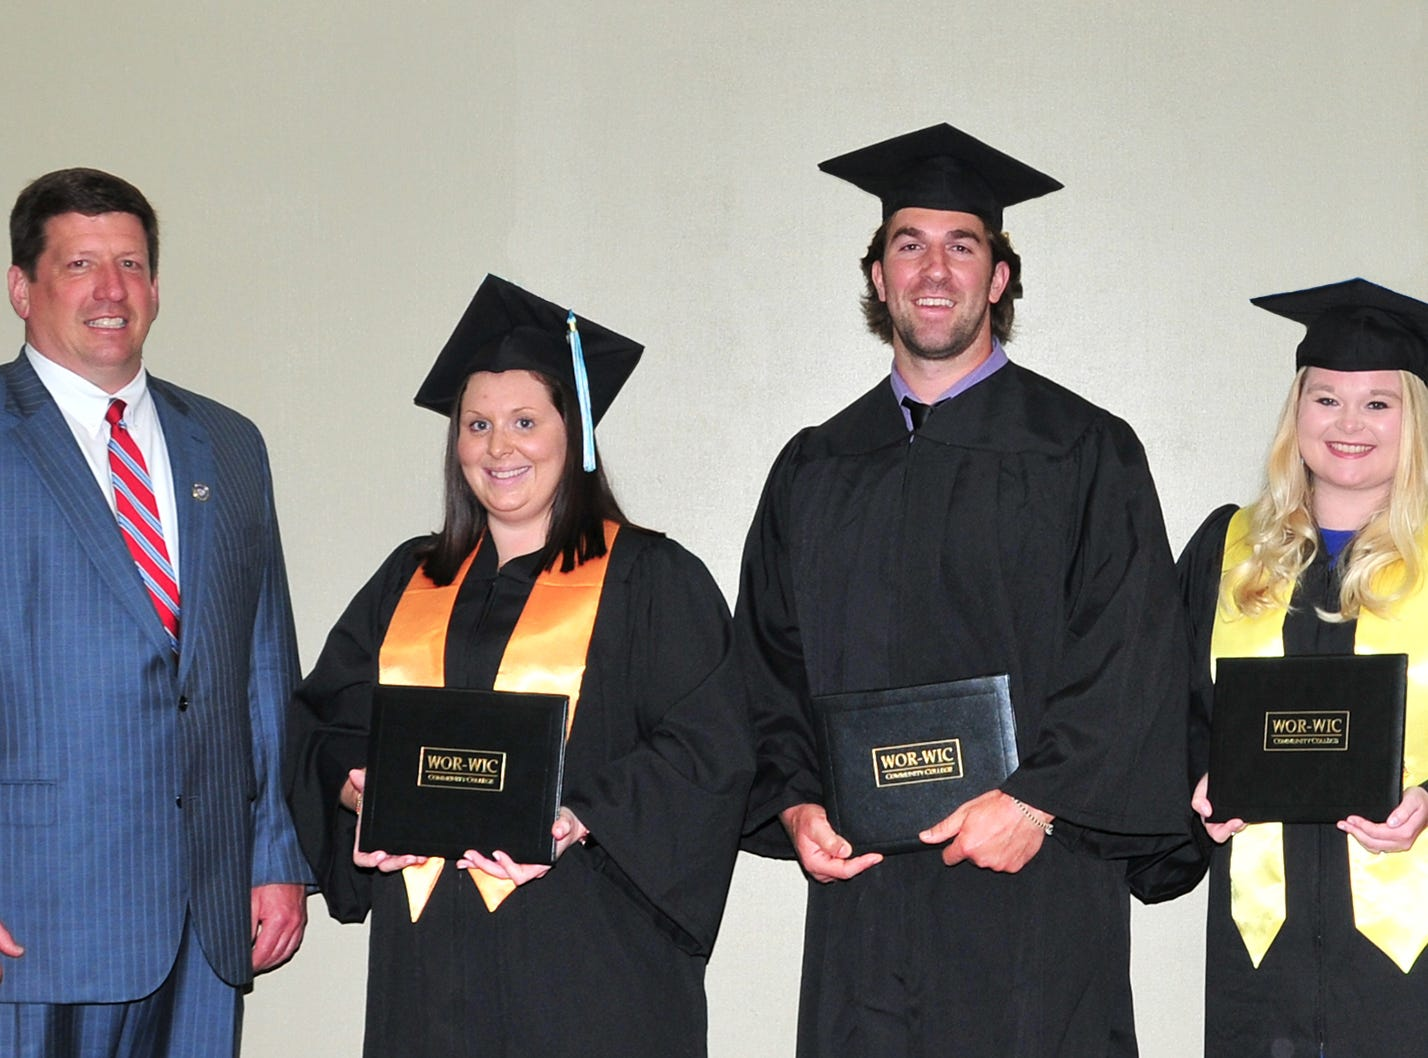 Del. Wayne Hartman, R-38C, of Ocean City, congratulates some of the graduates from Ocean City who received their associate degrees at Wor-Wic Community College. From left, next to Hartman, Lindsey Moore, Gavin Aquino, Tiffany Hastings, and Ryan Jasinski.